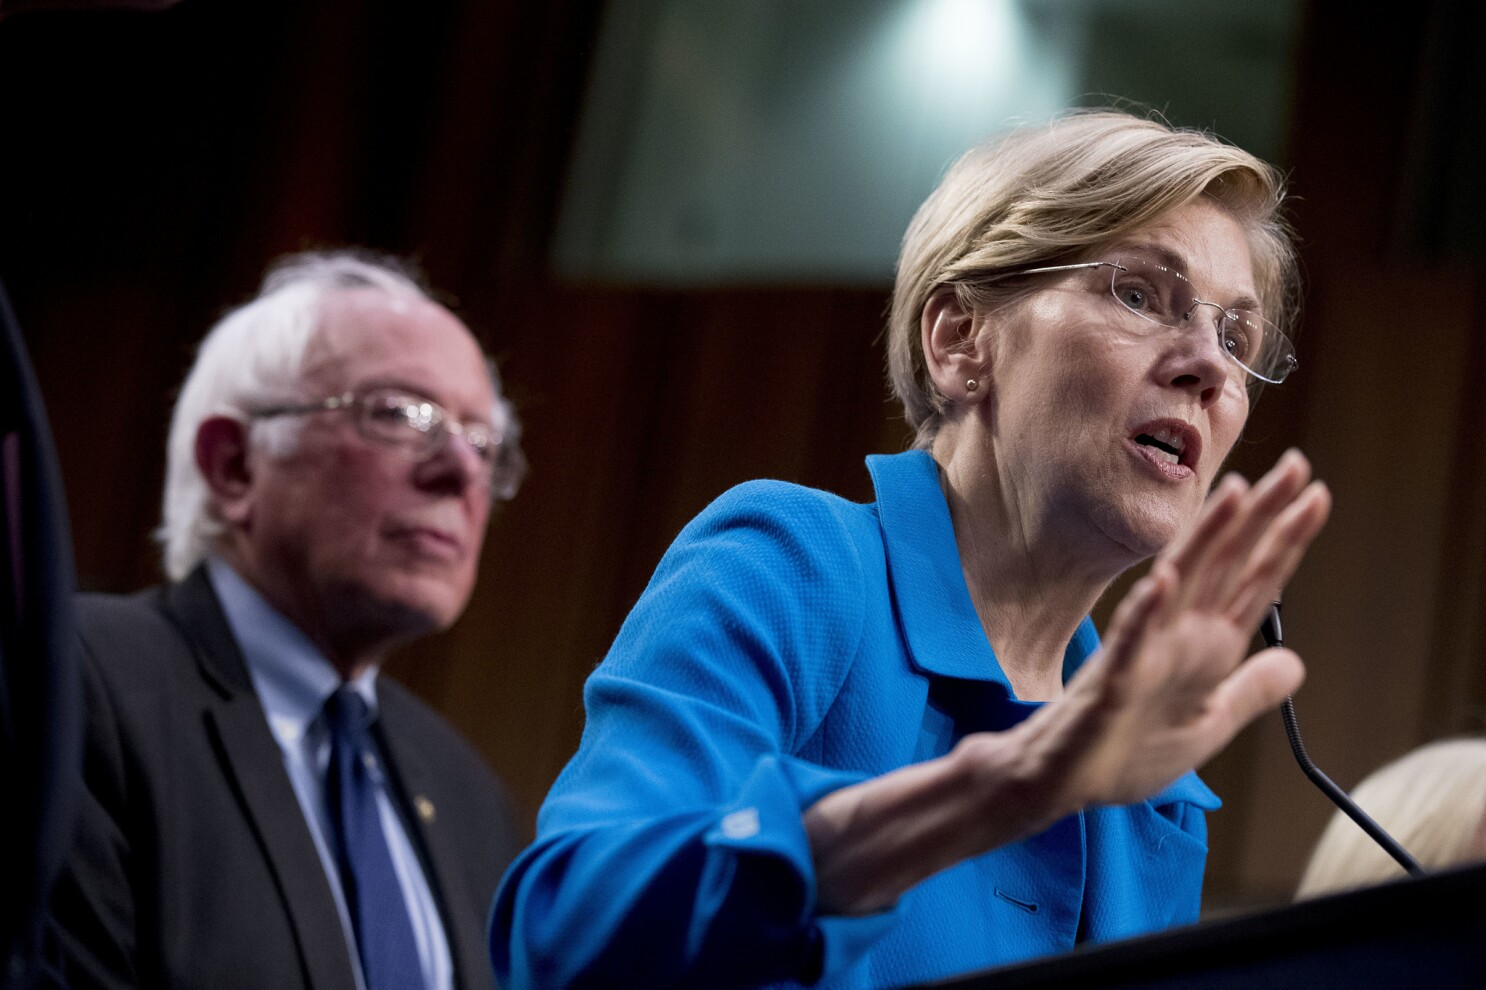 Column: Vested interests are already mounting dishonest attacks on 'Medicare for all'